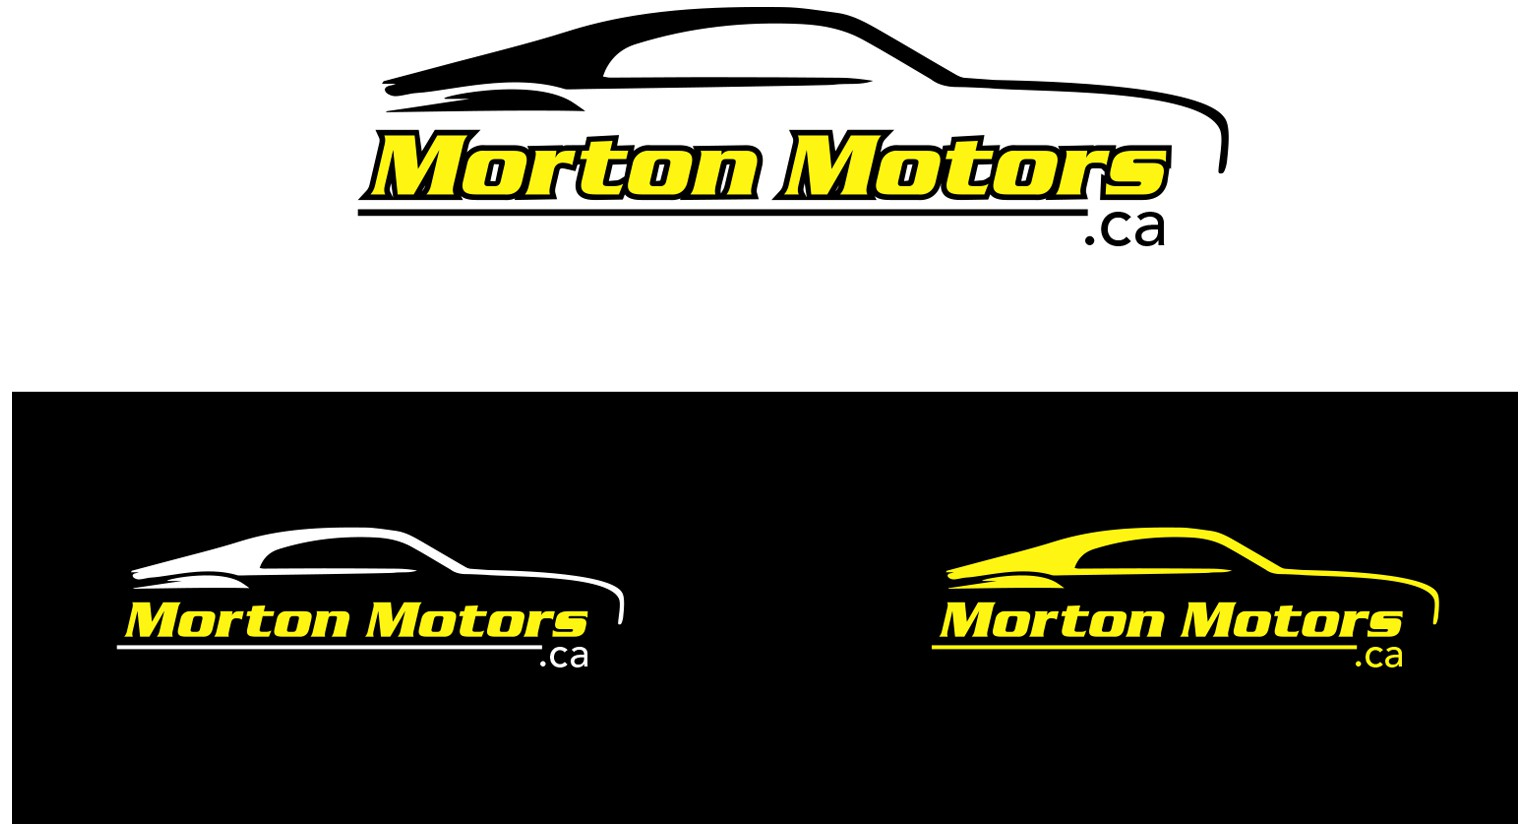 This new logo will help shape our entire business at Morton Motors!